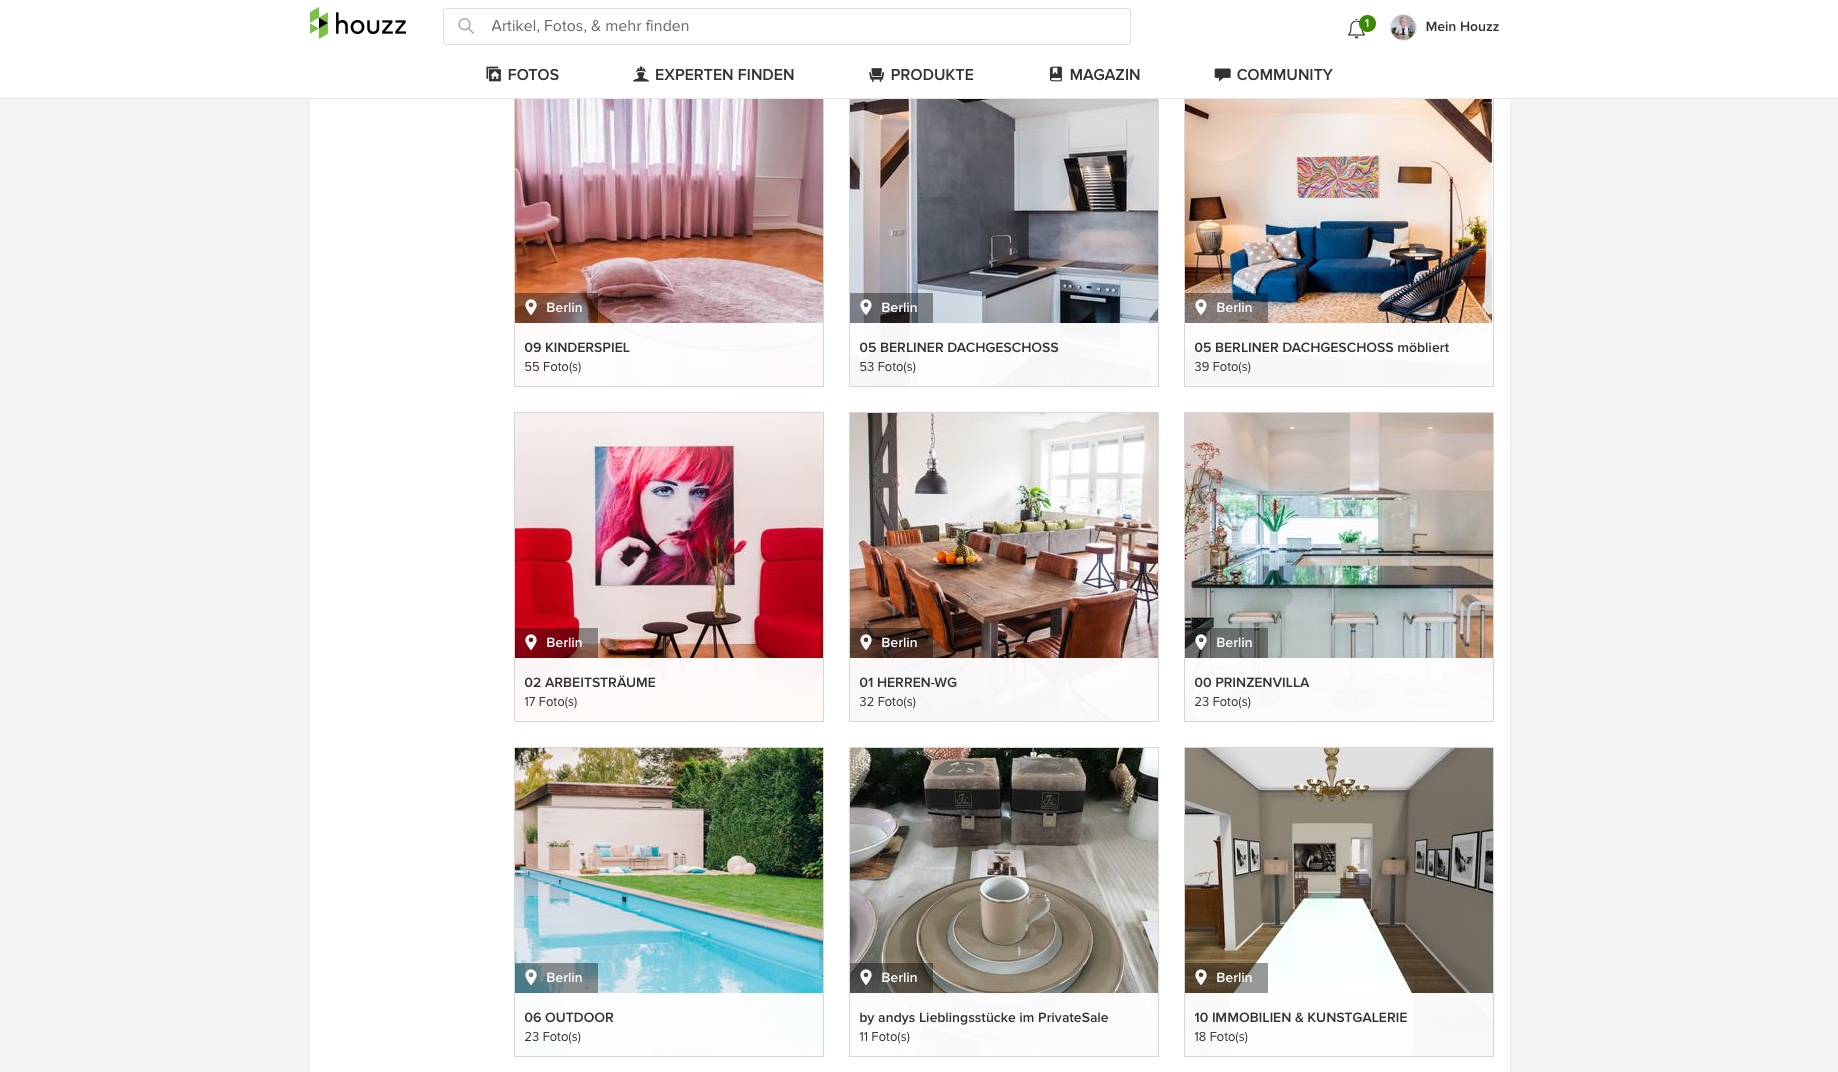 houzz_byandy2018 |by andy - for better moods